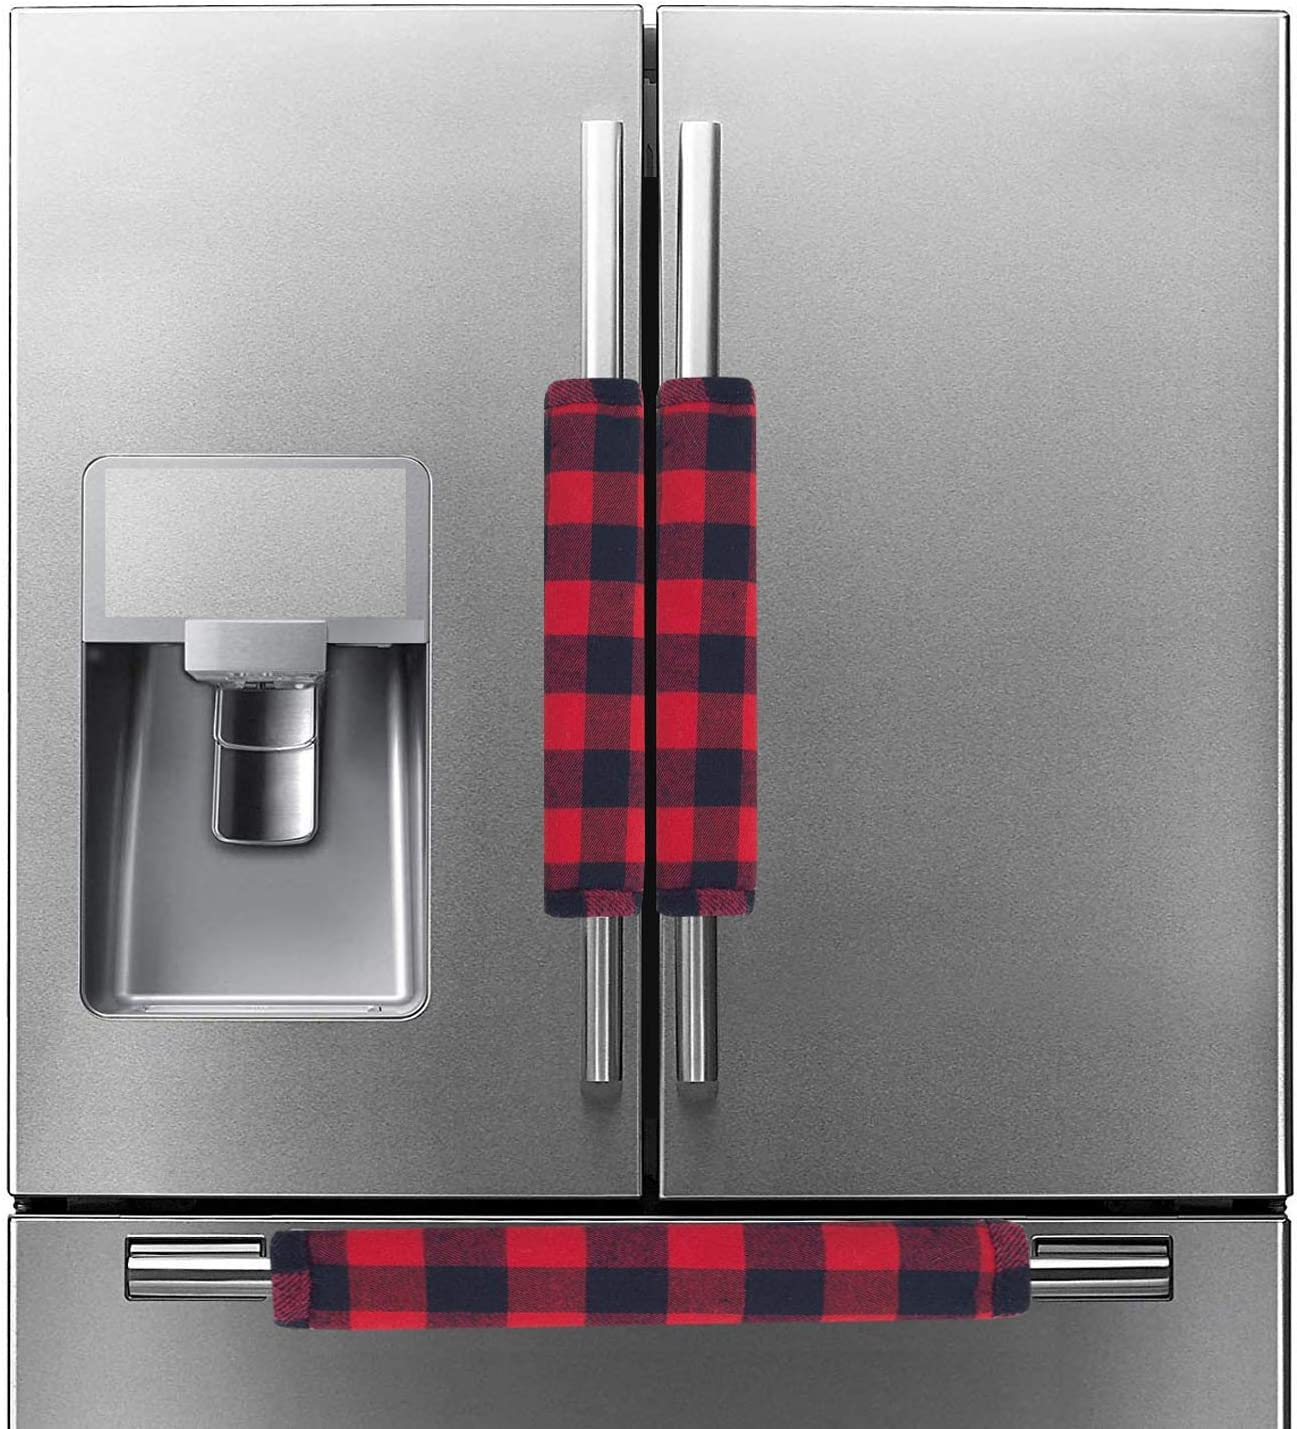 DayliPillow Buffalo Check Plaid Refrigerator Handle Covers Set of 3,Farmhouse Red and Black Plaid Kitchen Appliance Handle Covers, Microwave Oven Fridge/Dishwasher Door Handle Protector